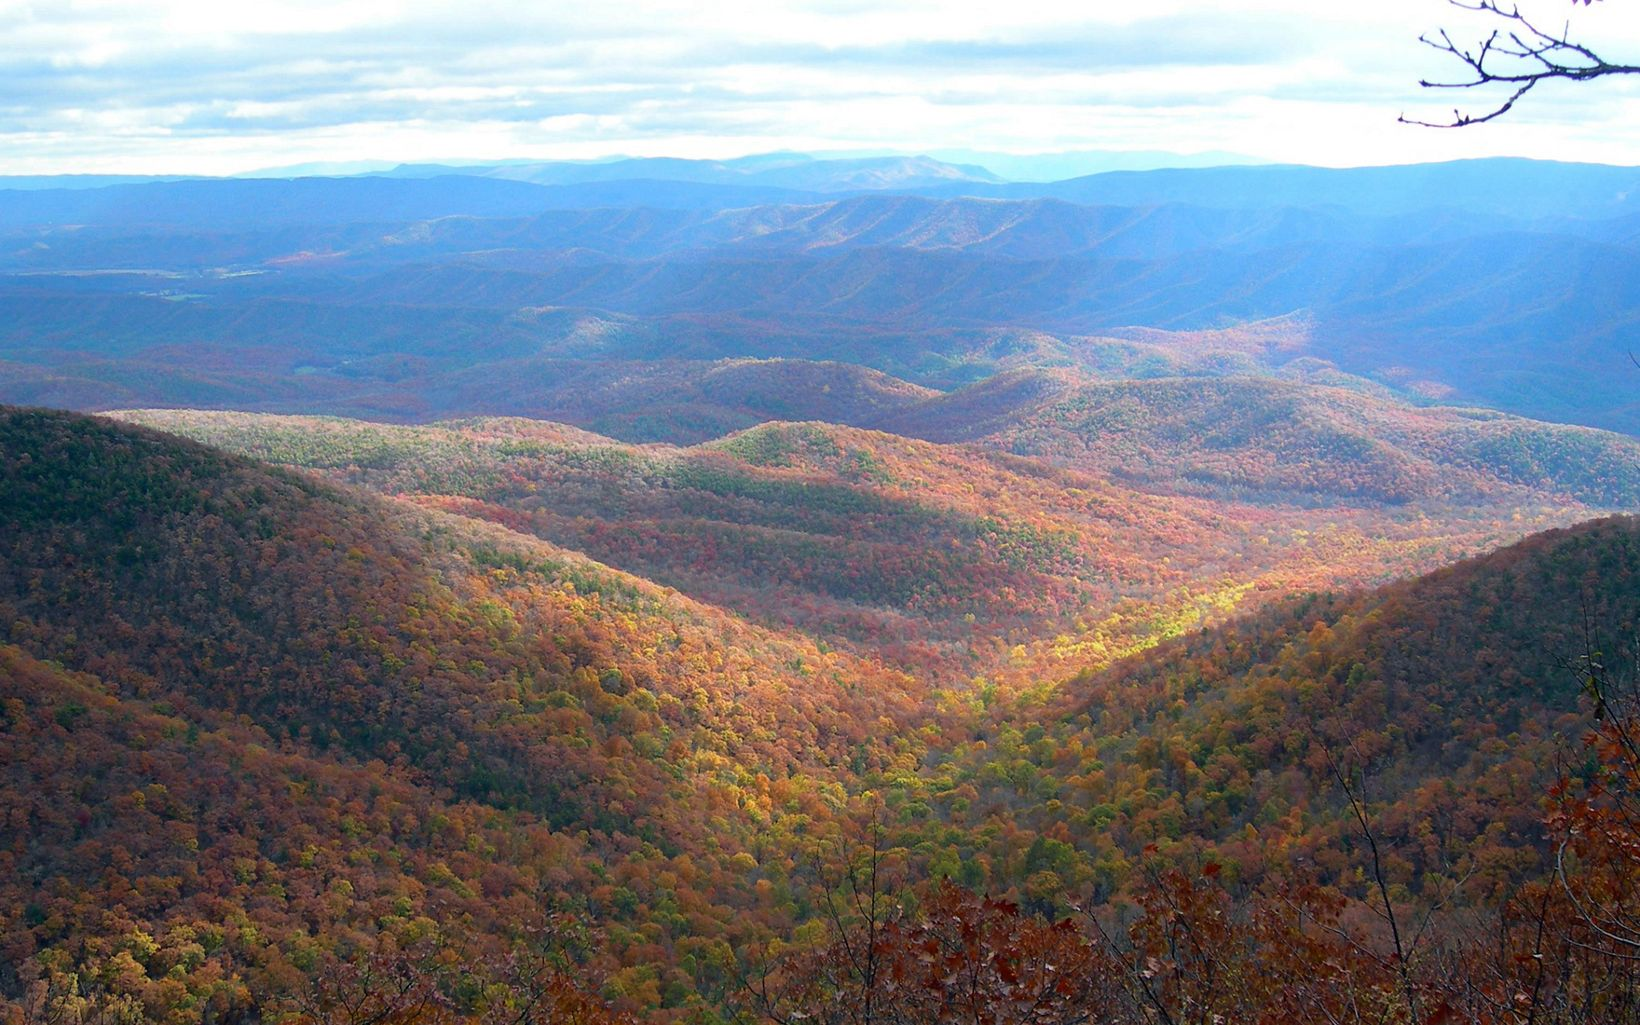 Bear Loop overlook at Warm Springs Mountain, Virginia.